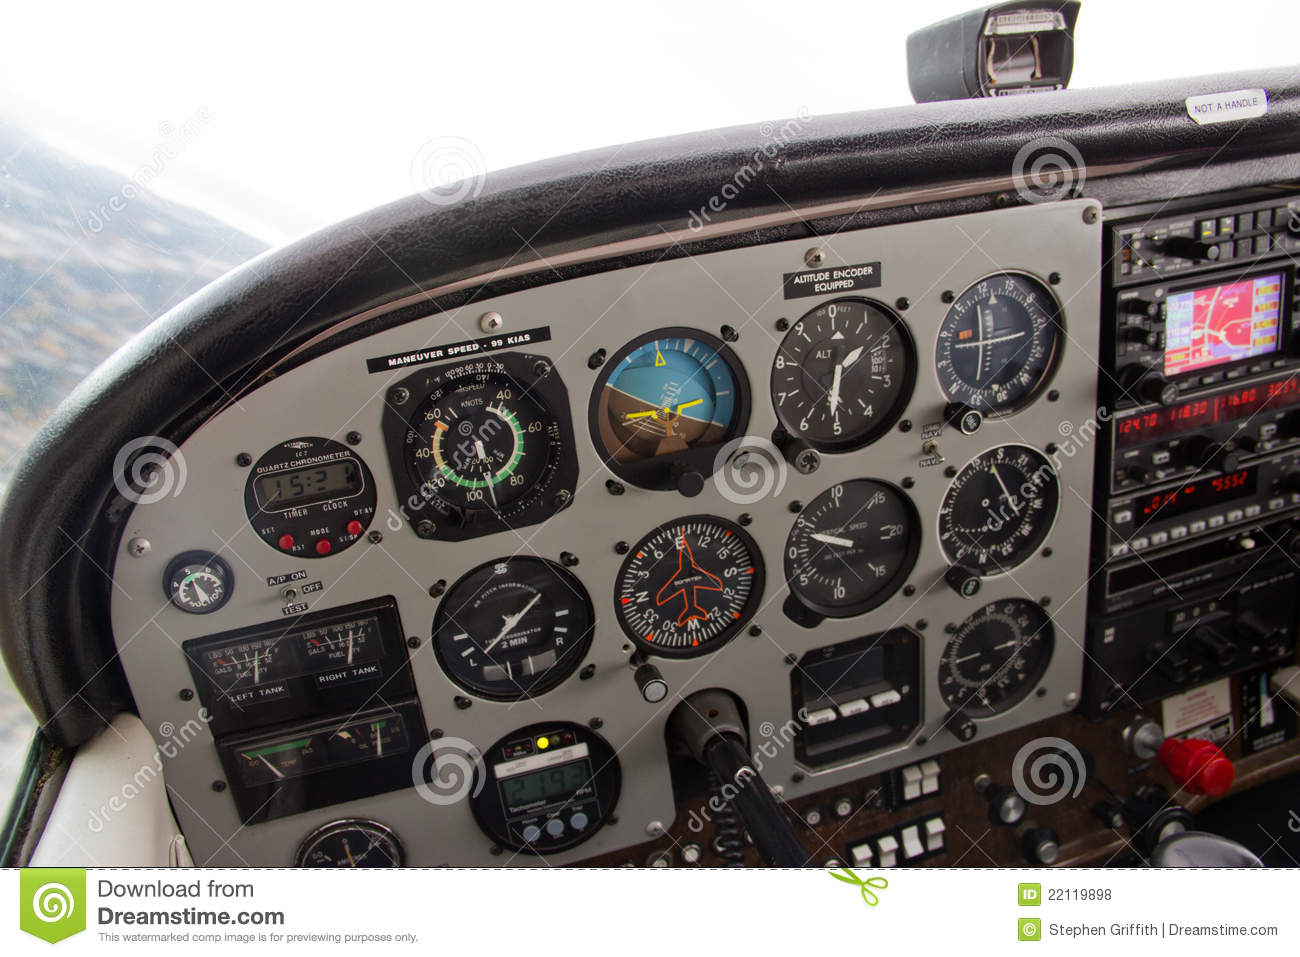 Airplane Instrument Panel : Pilot view of complex instrument panel airplane stock